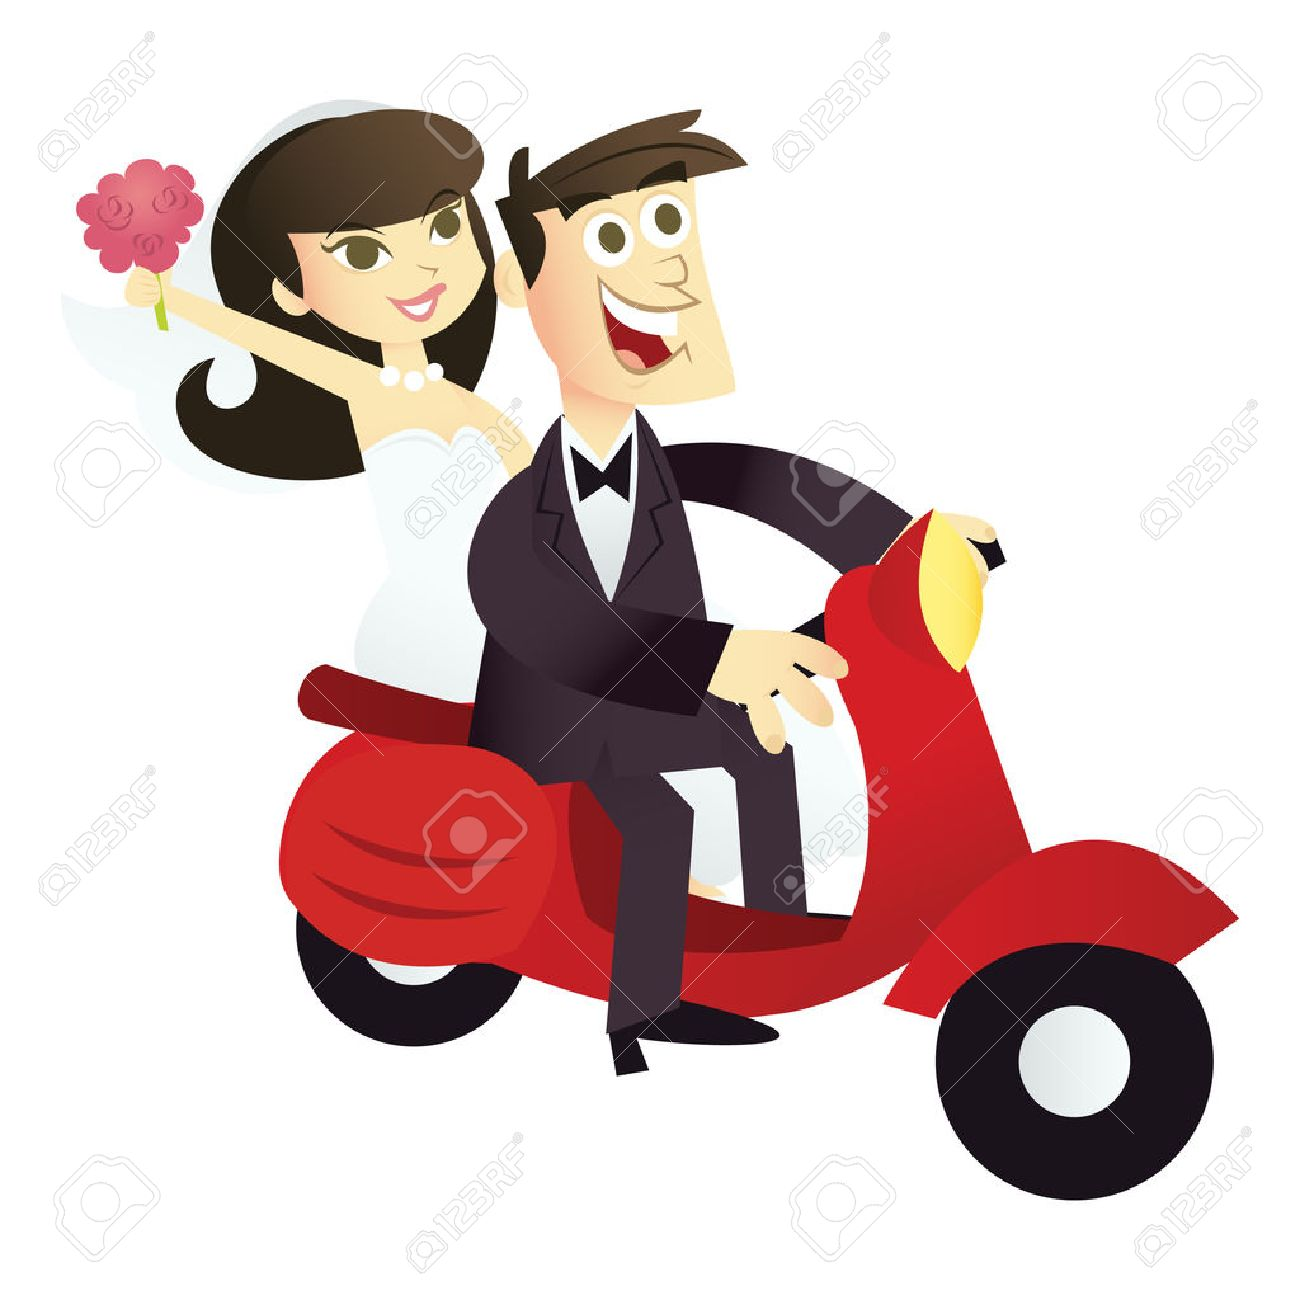 A Cartoon Illustration Of A Happy Wedding Couple On A Red Scooter Royalty Free Cliparts Vectors And Stock Illustration Image 39137016